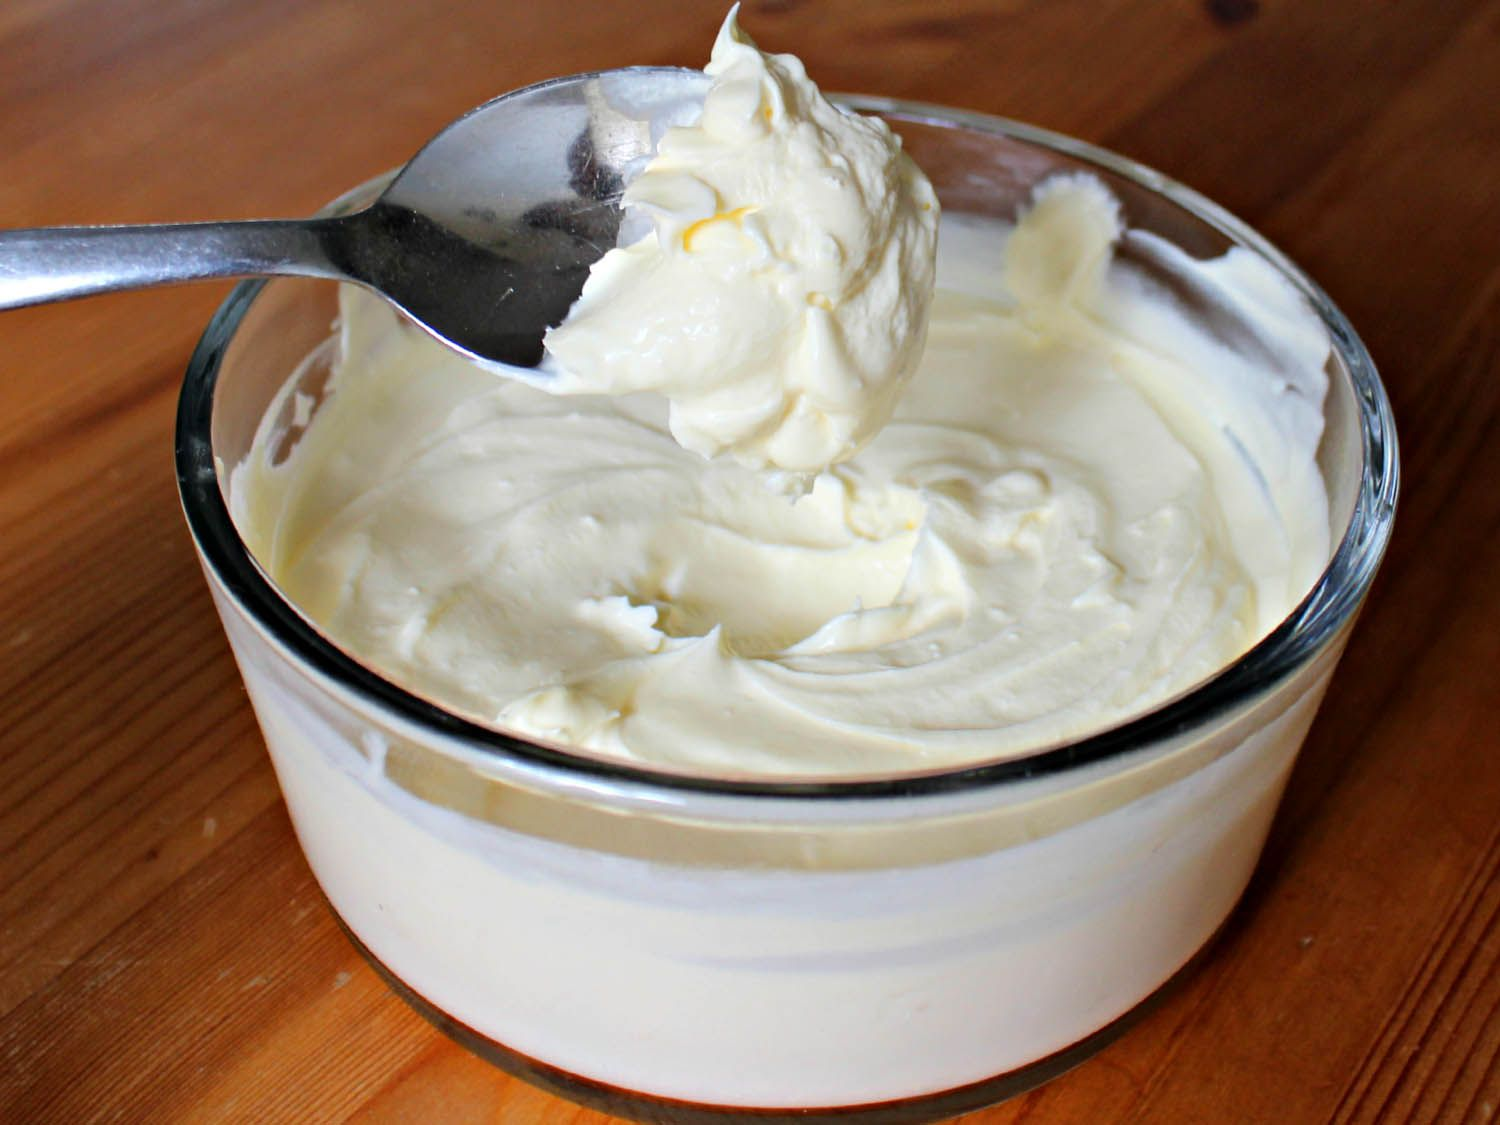 20140714-cream-science-what-happens-when-you-whip-it-claire-lower-ultra-pasteurized-batch.jpg